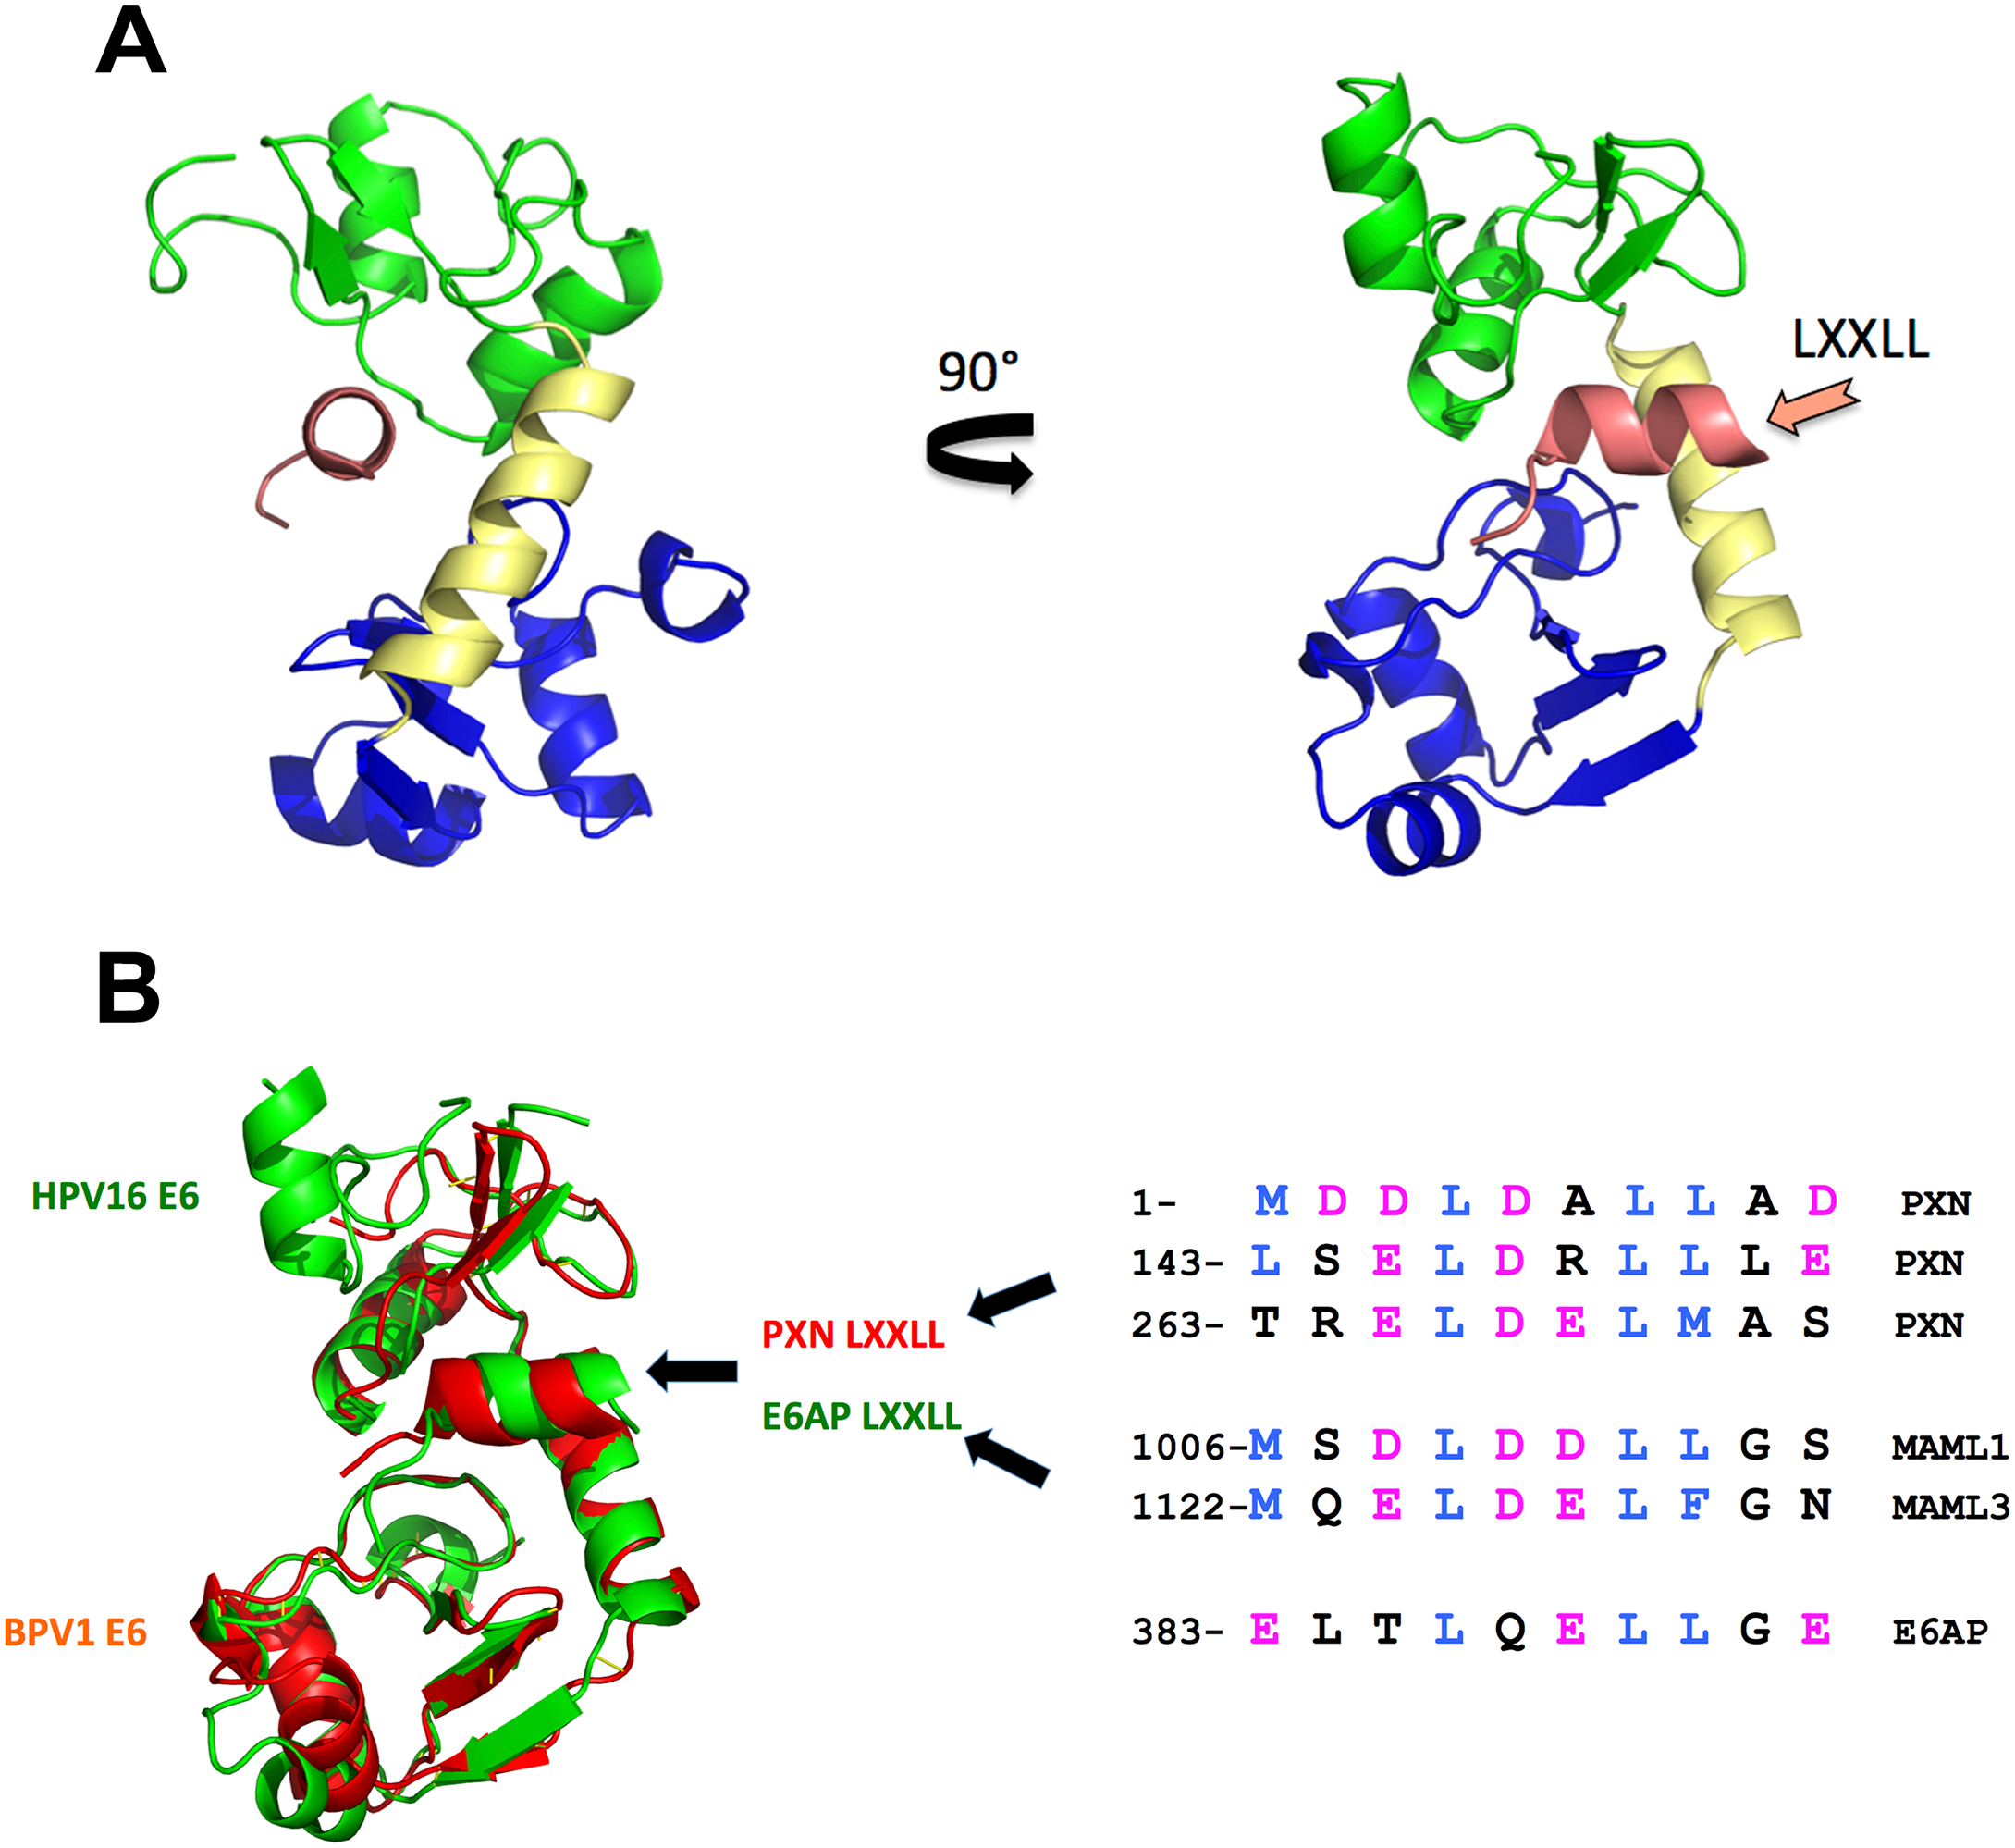 E6 structure and LXXLL interactions.